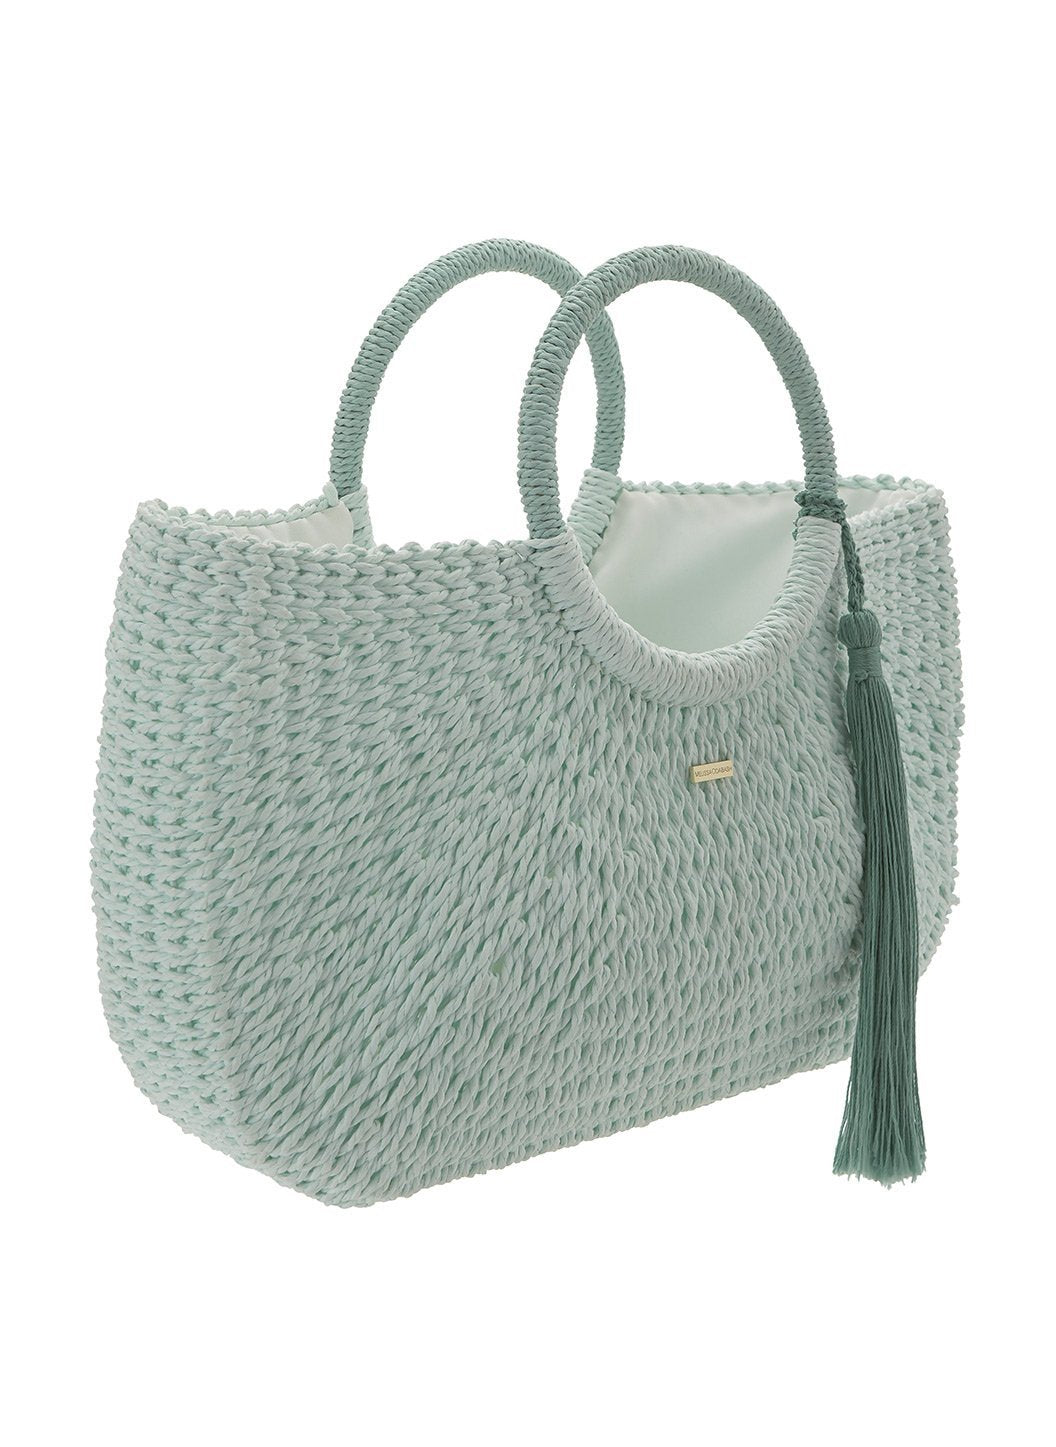 sorrento woven basket bag mint 2019 2